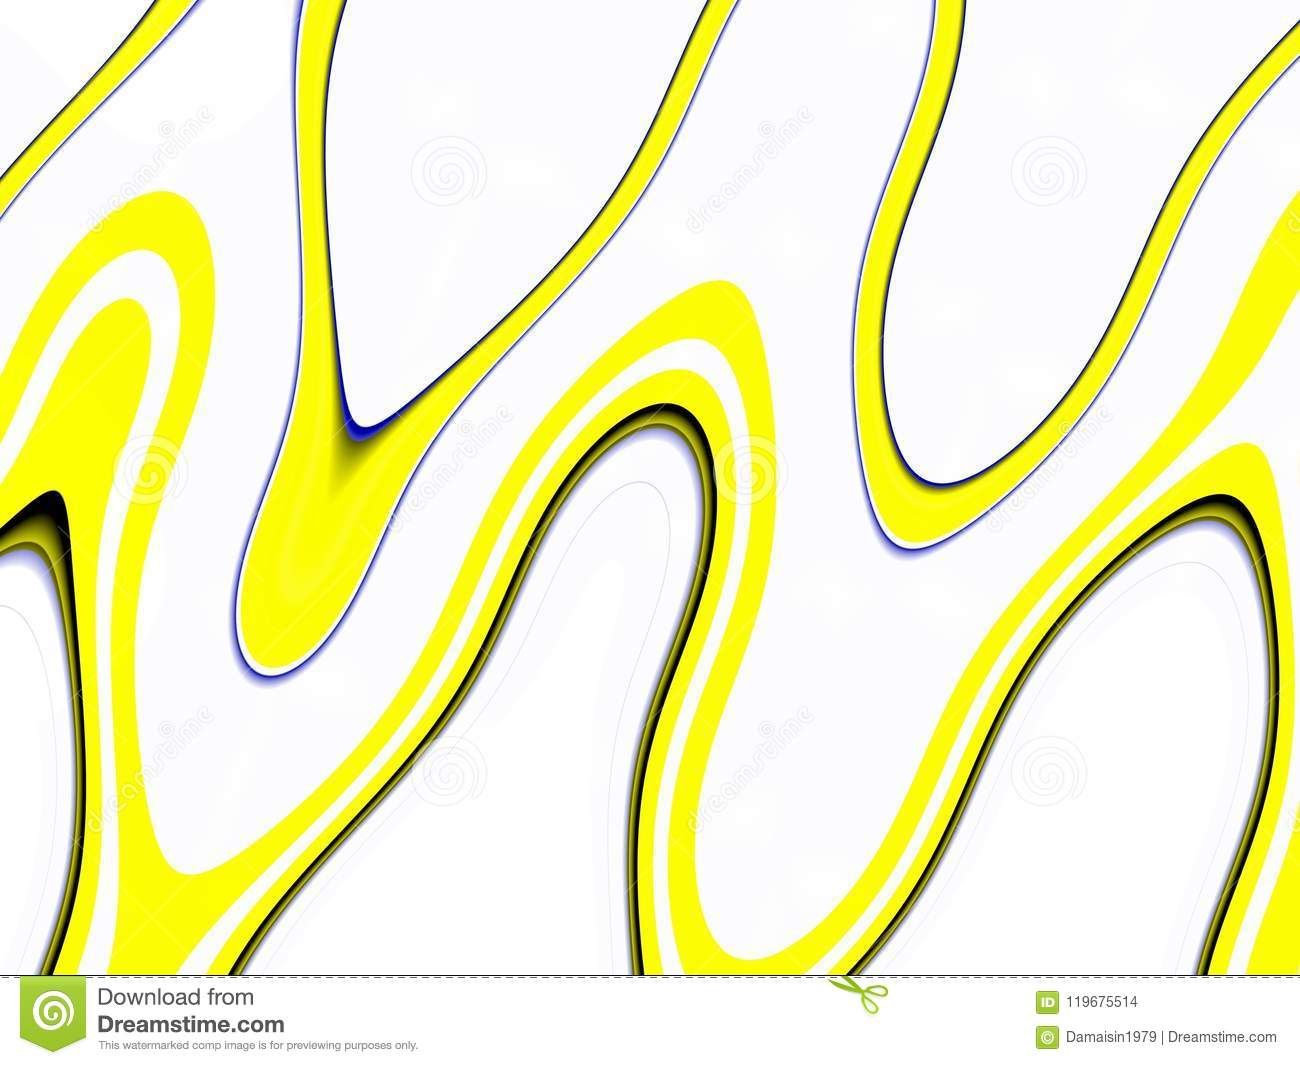 Playful black yellow waves background. Waves like shapes, abstract background